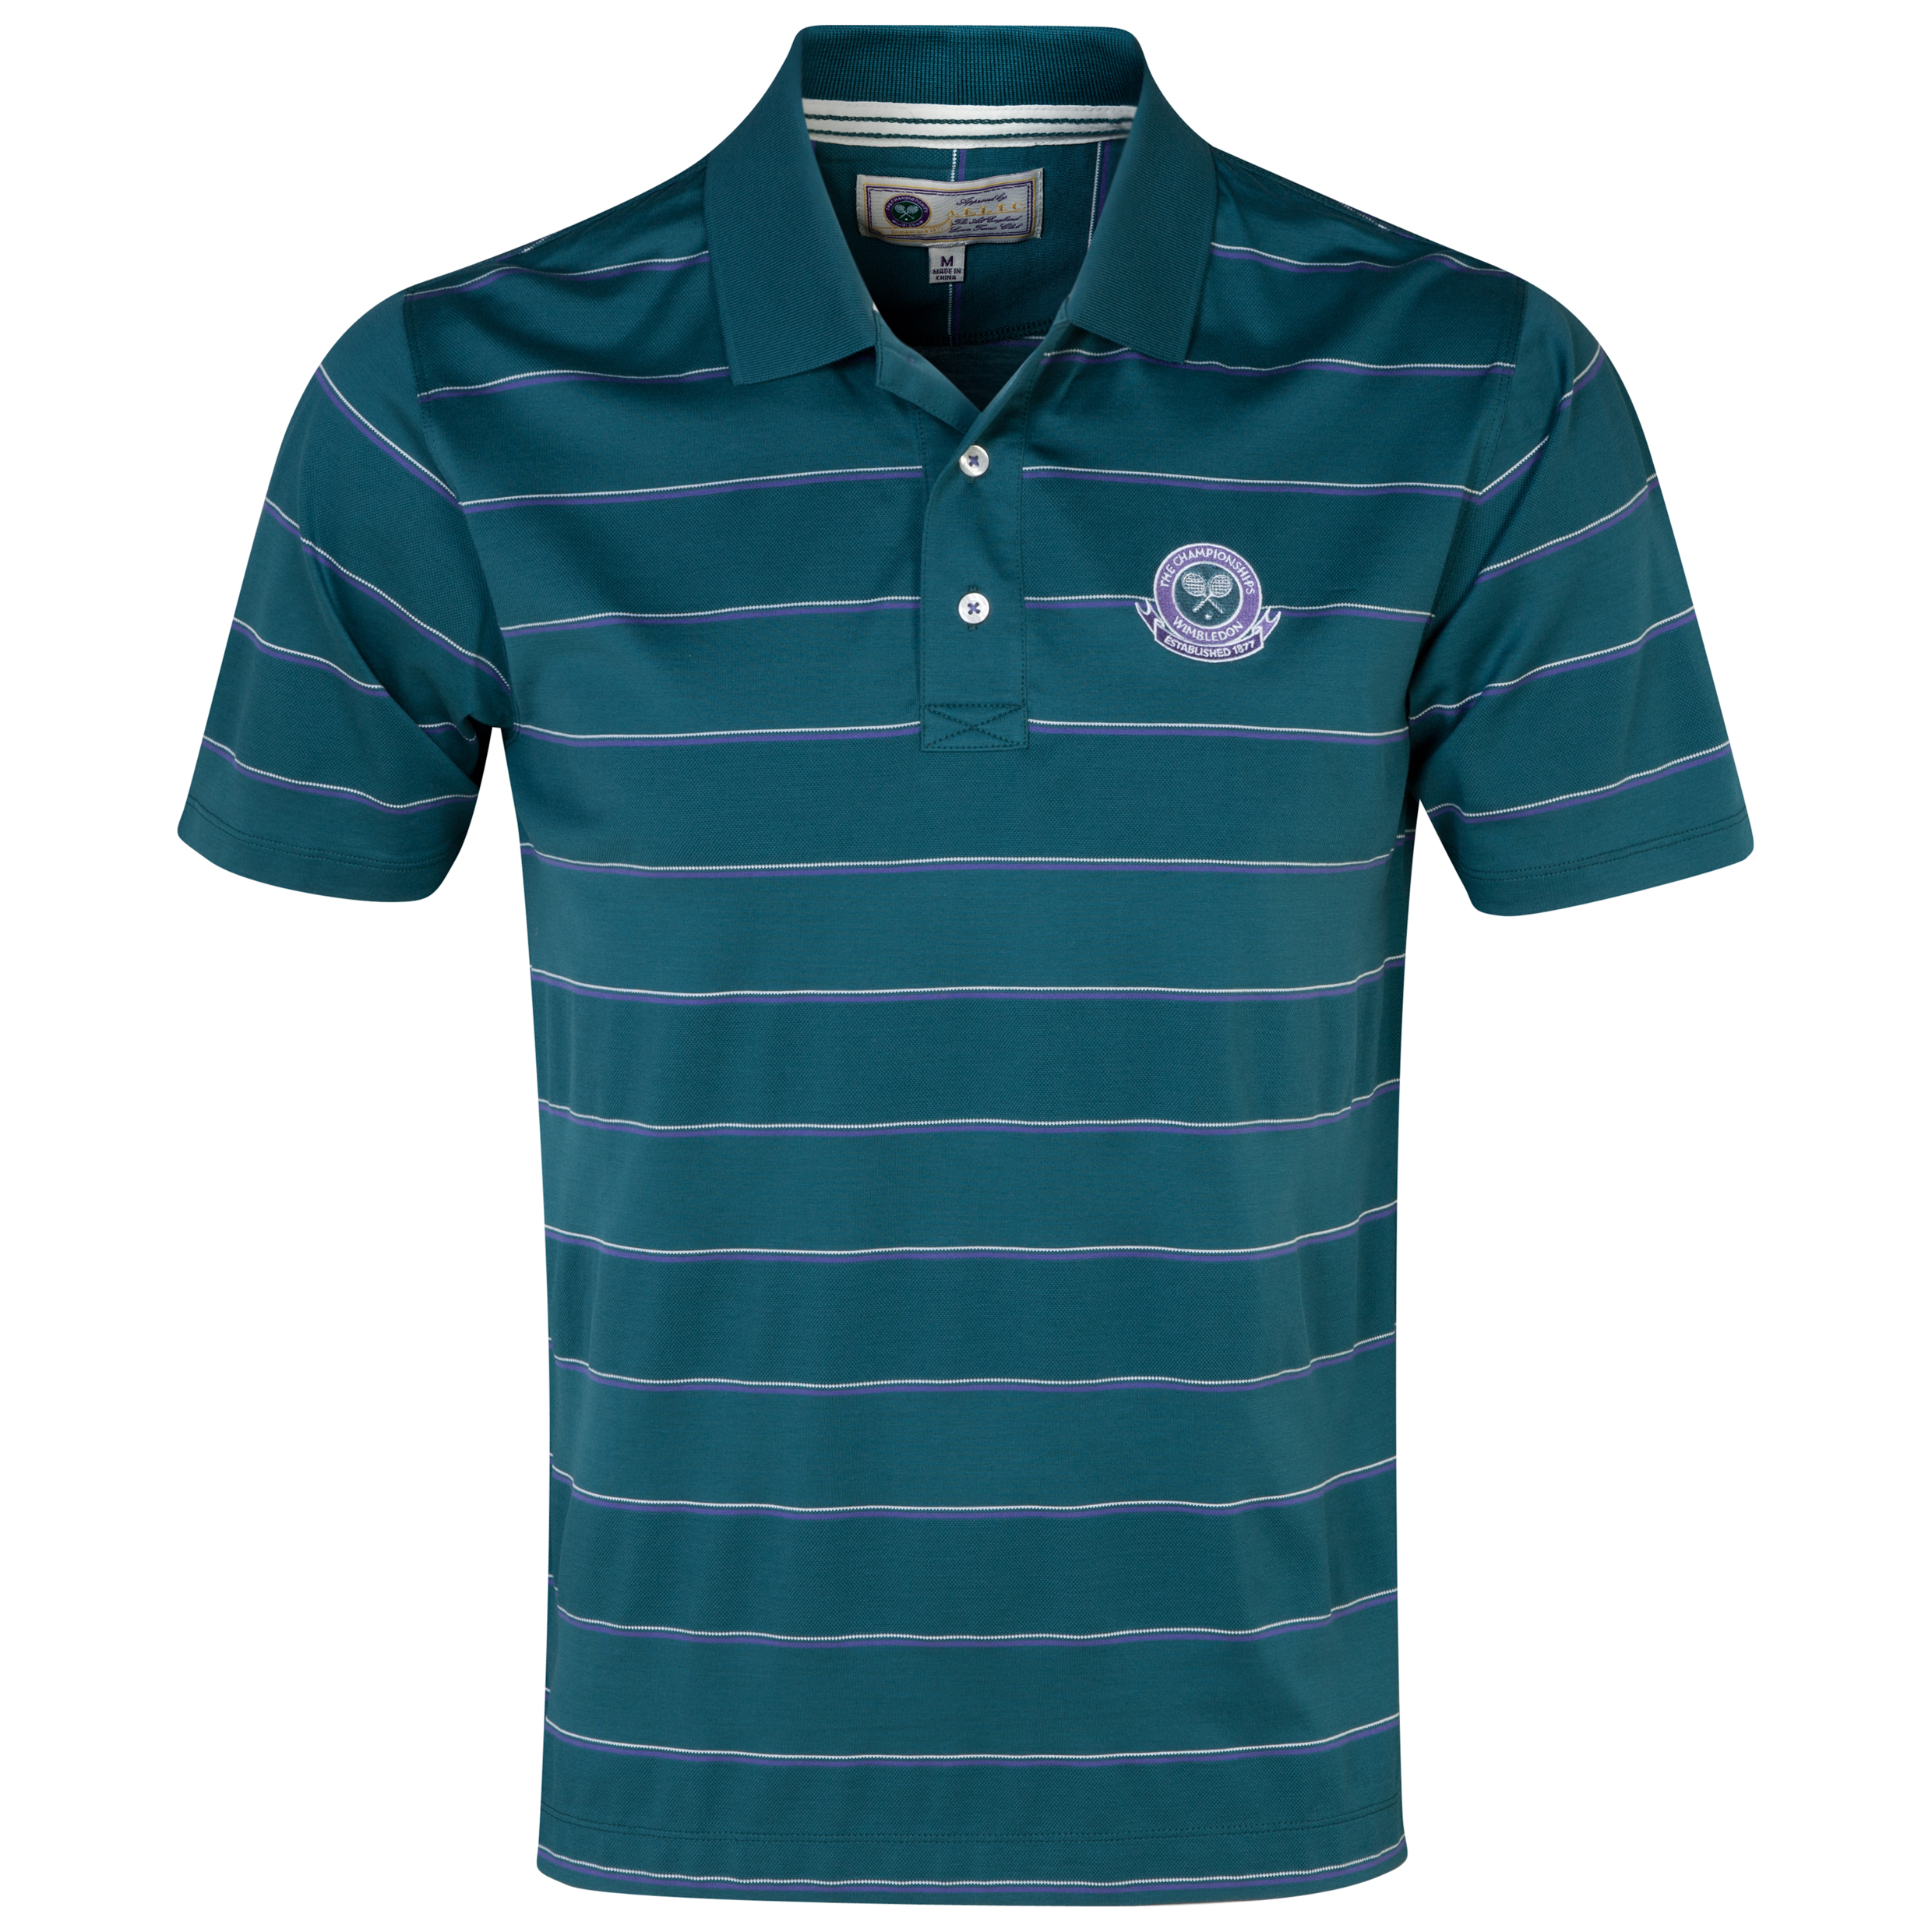 Wimbledon Mercerised Polo Shirt Green